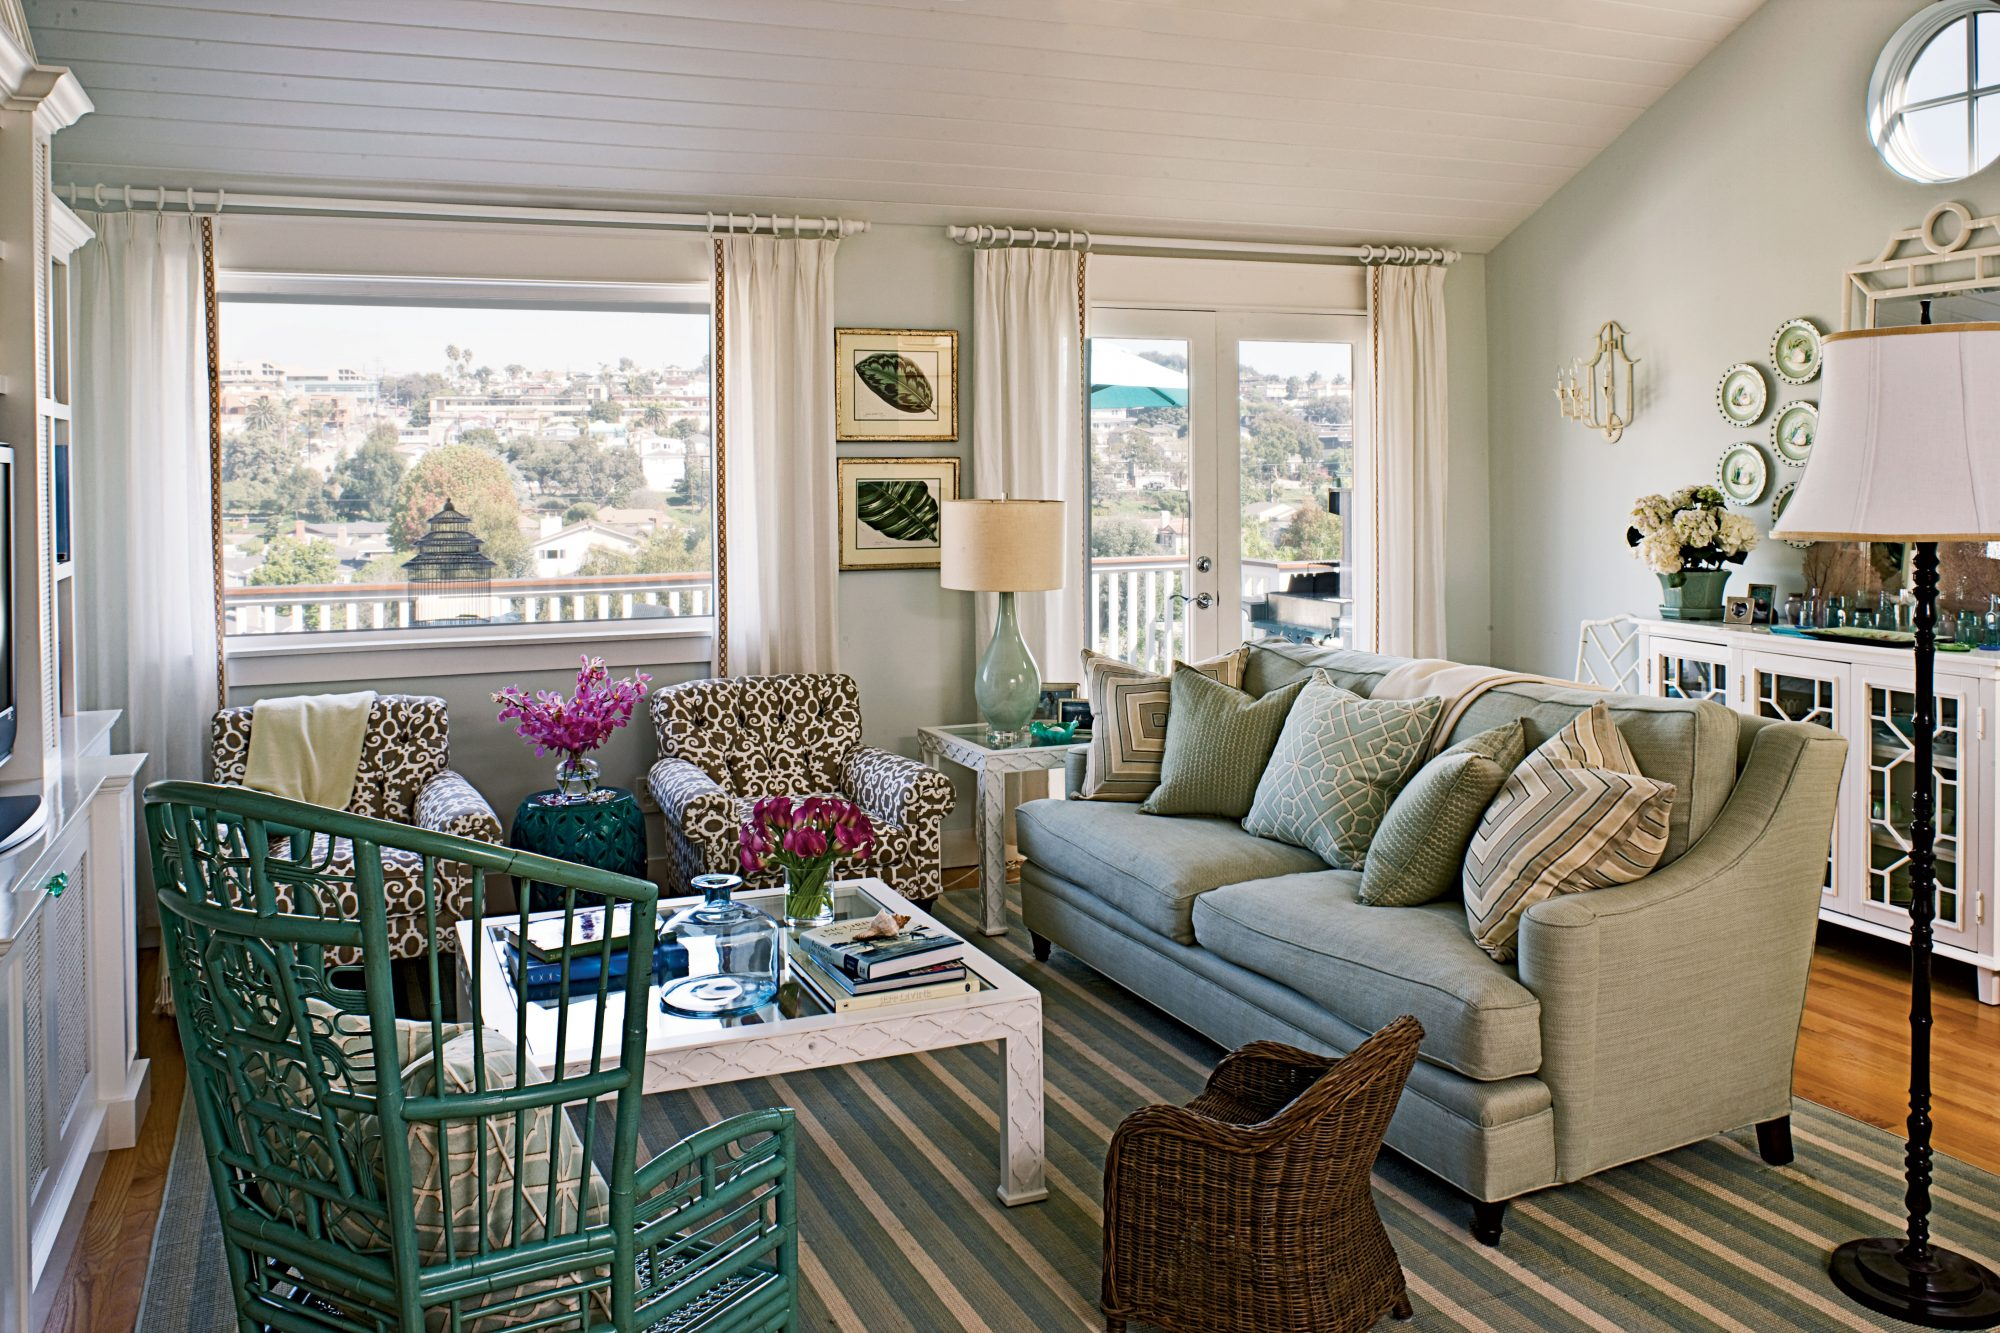 Layering patterns and textures is a breeze with blue, green, and brown tones. They look great together in nature's seascapes and using them indoors brings the outside in.